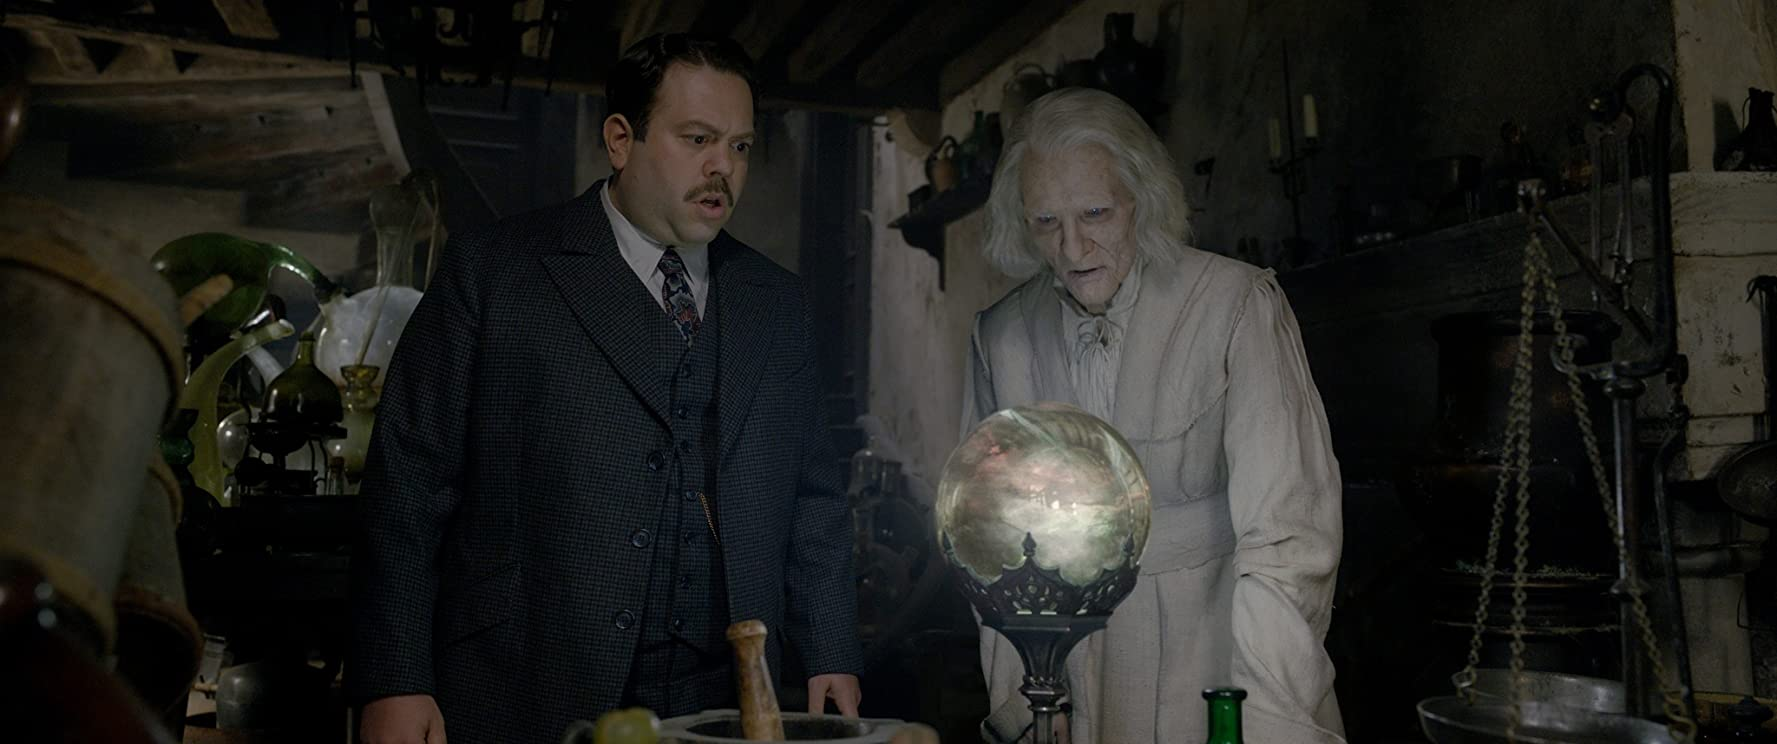 Dan Fogler and Brontis Jodorowsky in Fantastic Beasts: The Crimes of Grindelwald (2018)